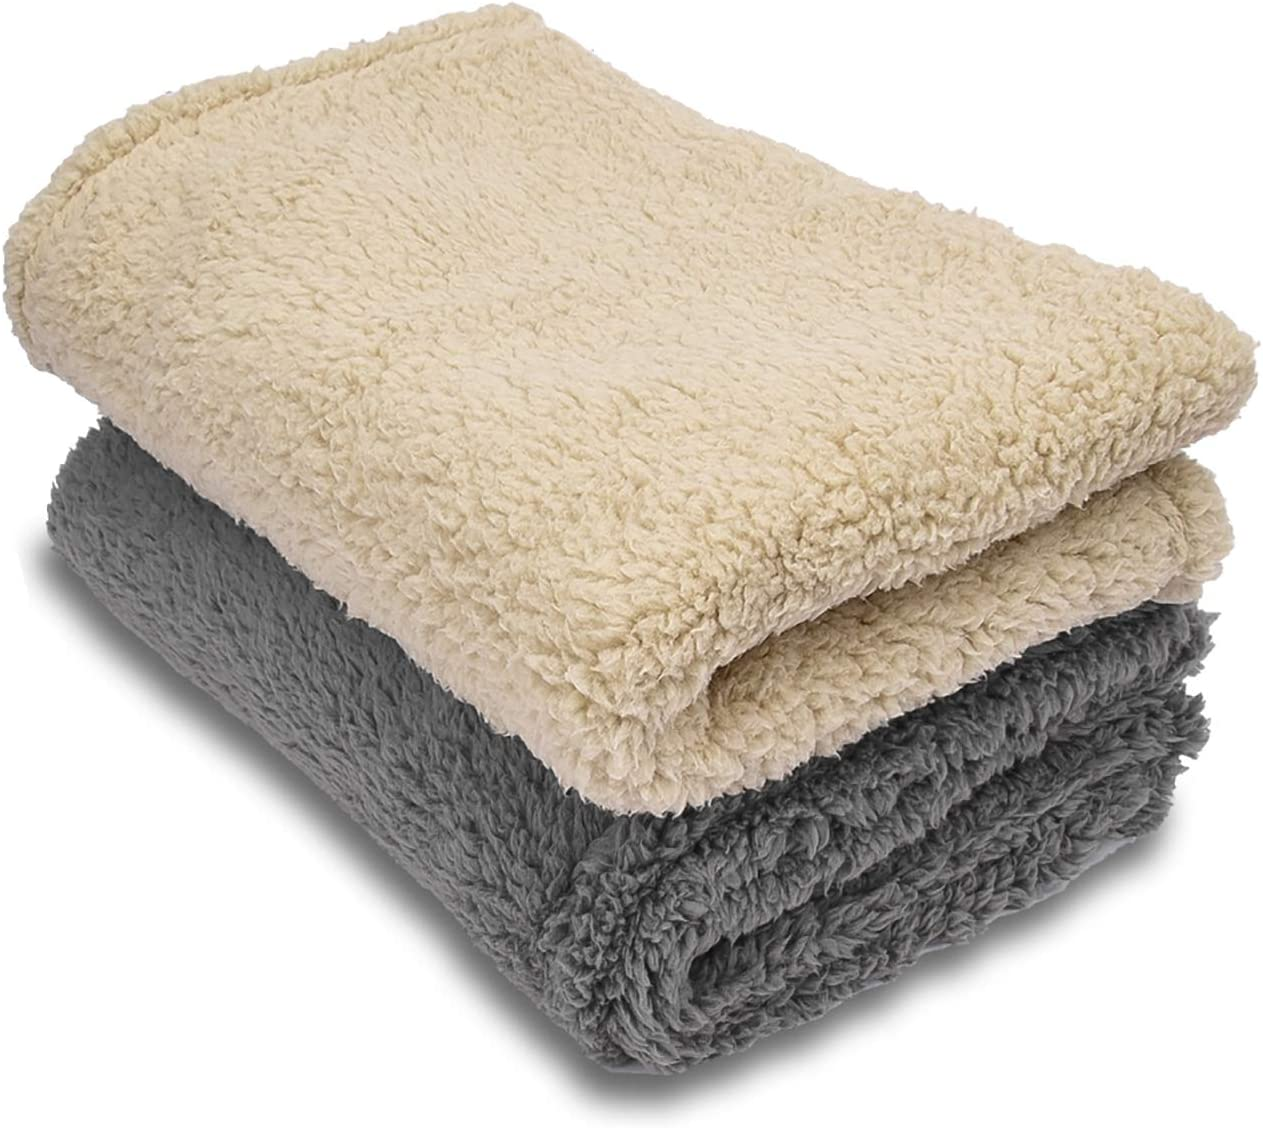 AIPERRO 2 Pack Premium Fluffy Fleece Dog Blanket, Soft and Warm Pet Throw Blankets Bed Couch Car Seat Cover Washable for Puppies and Cats